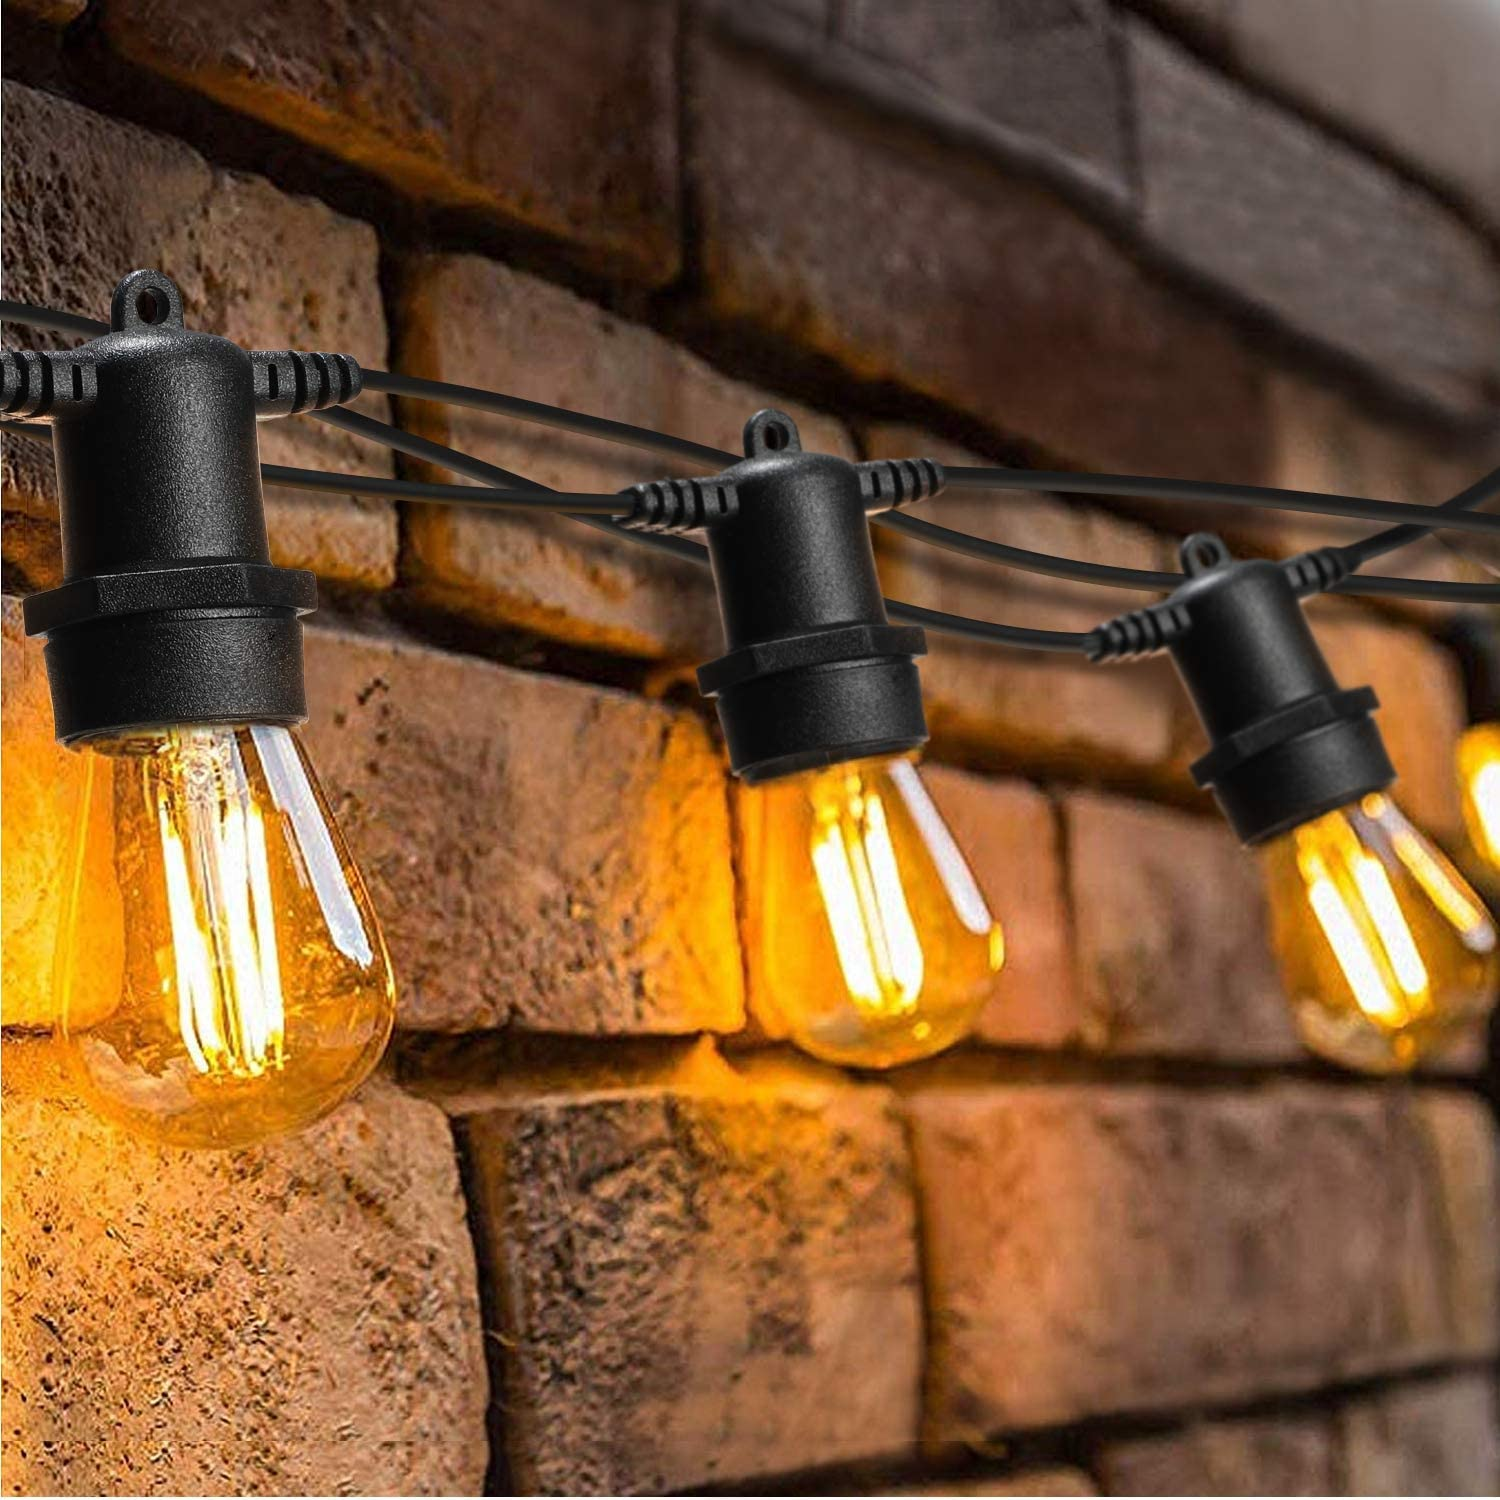 LED Outdoor String Lights with 40 Shatterproof Plastic Bulbs, OxyLED 128 Ft Hanging String Lights Waterproof, Bulb String Lights for Bedroom Patio Garden Yard Wedding Party Christmas, Warm White